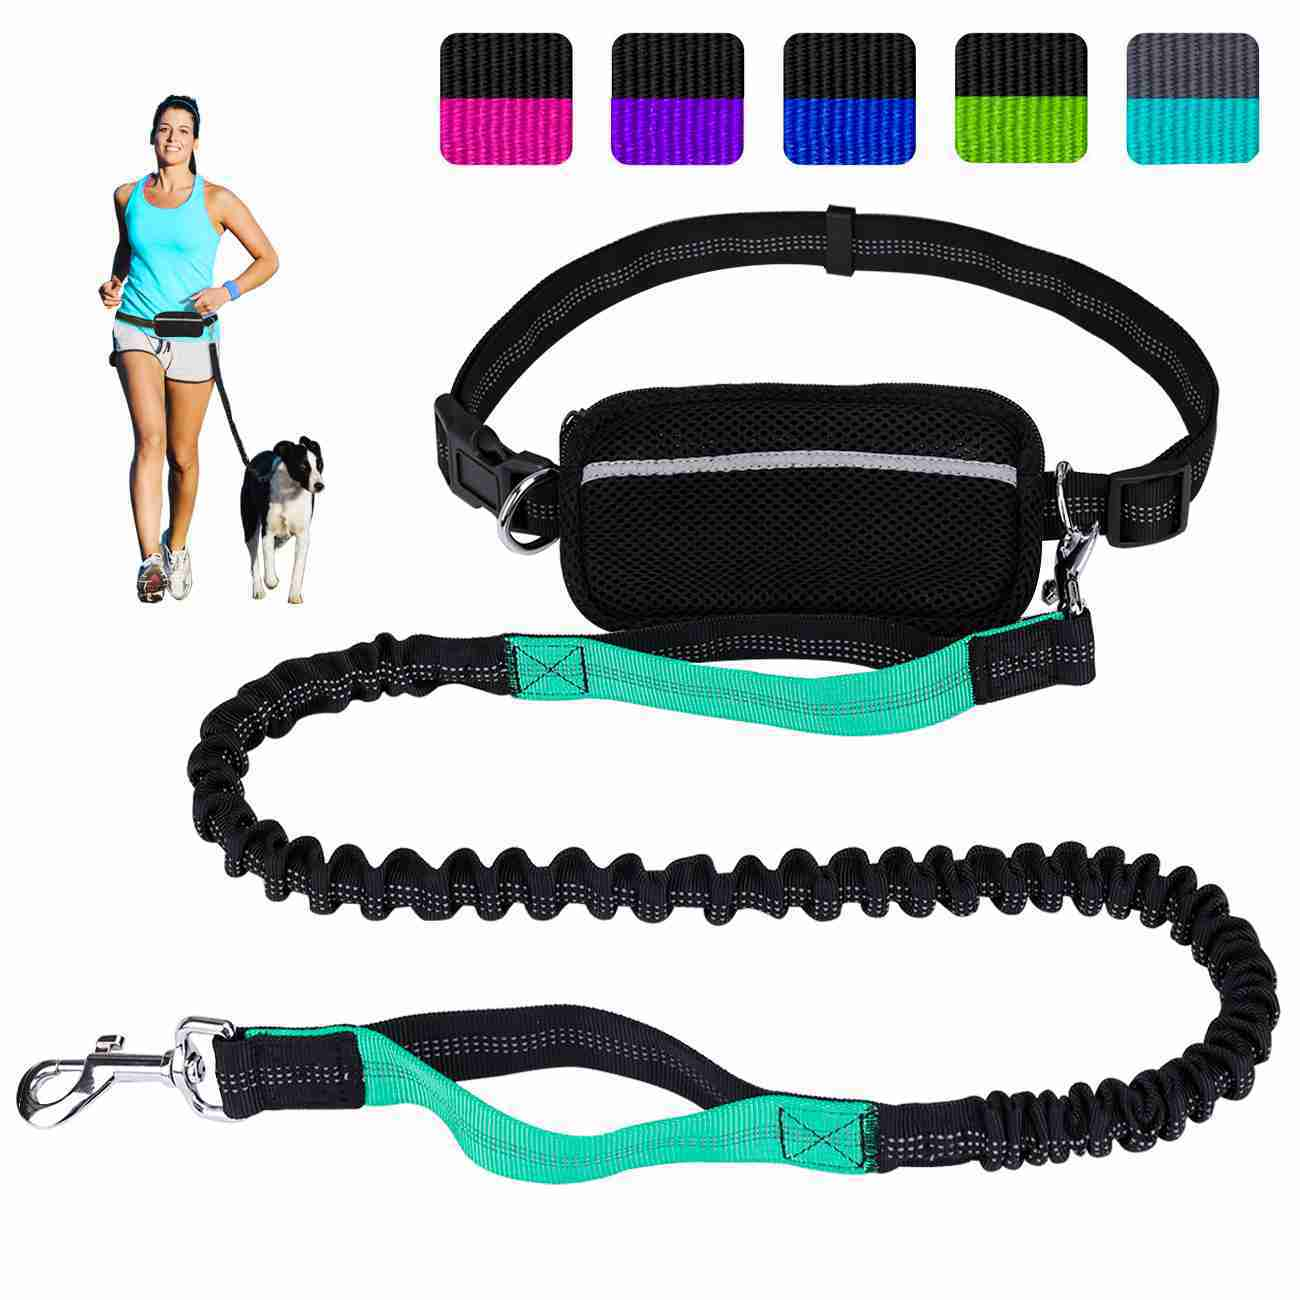 Hands Free Dog Leash for Running Walking Training Hiking, Dual-Handle Shock Absorbing Reflective Bungee, Adjustable Waist Belt and Pouch, Ideal for Medium to Large Dogs (Black / Teal)